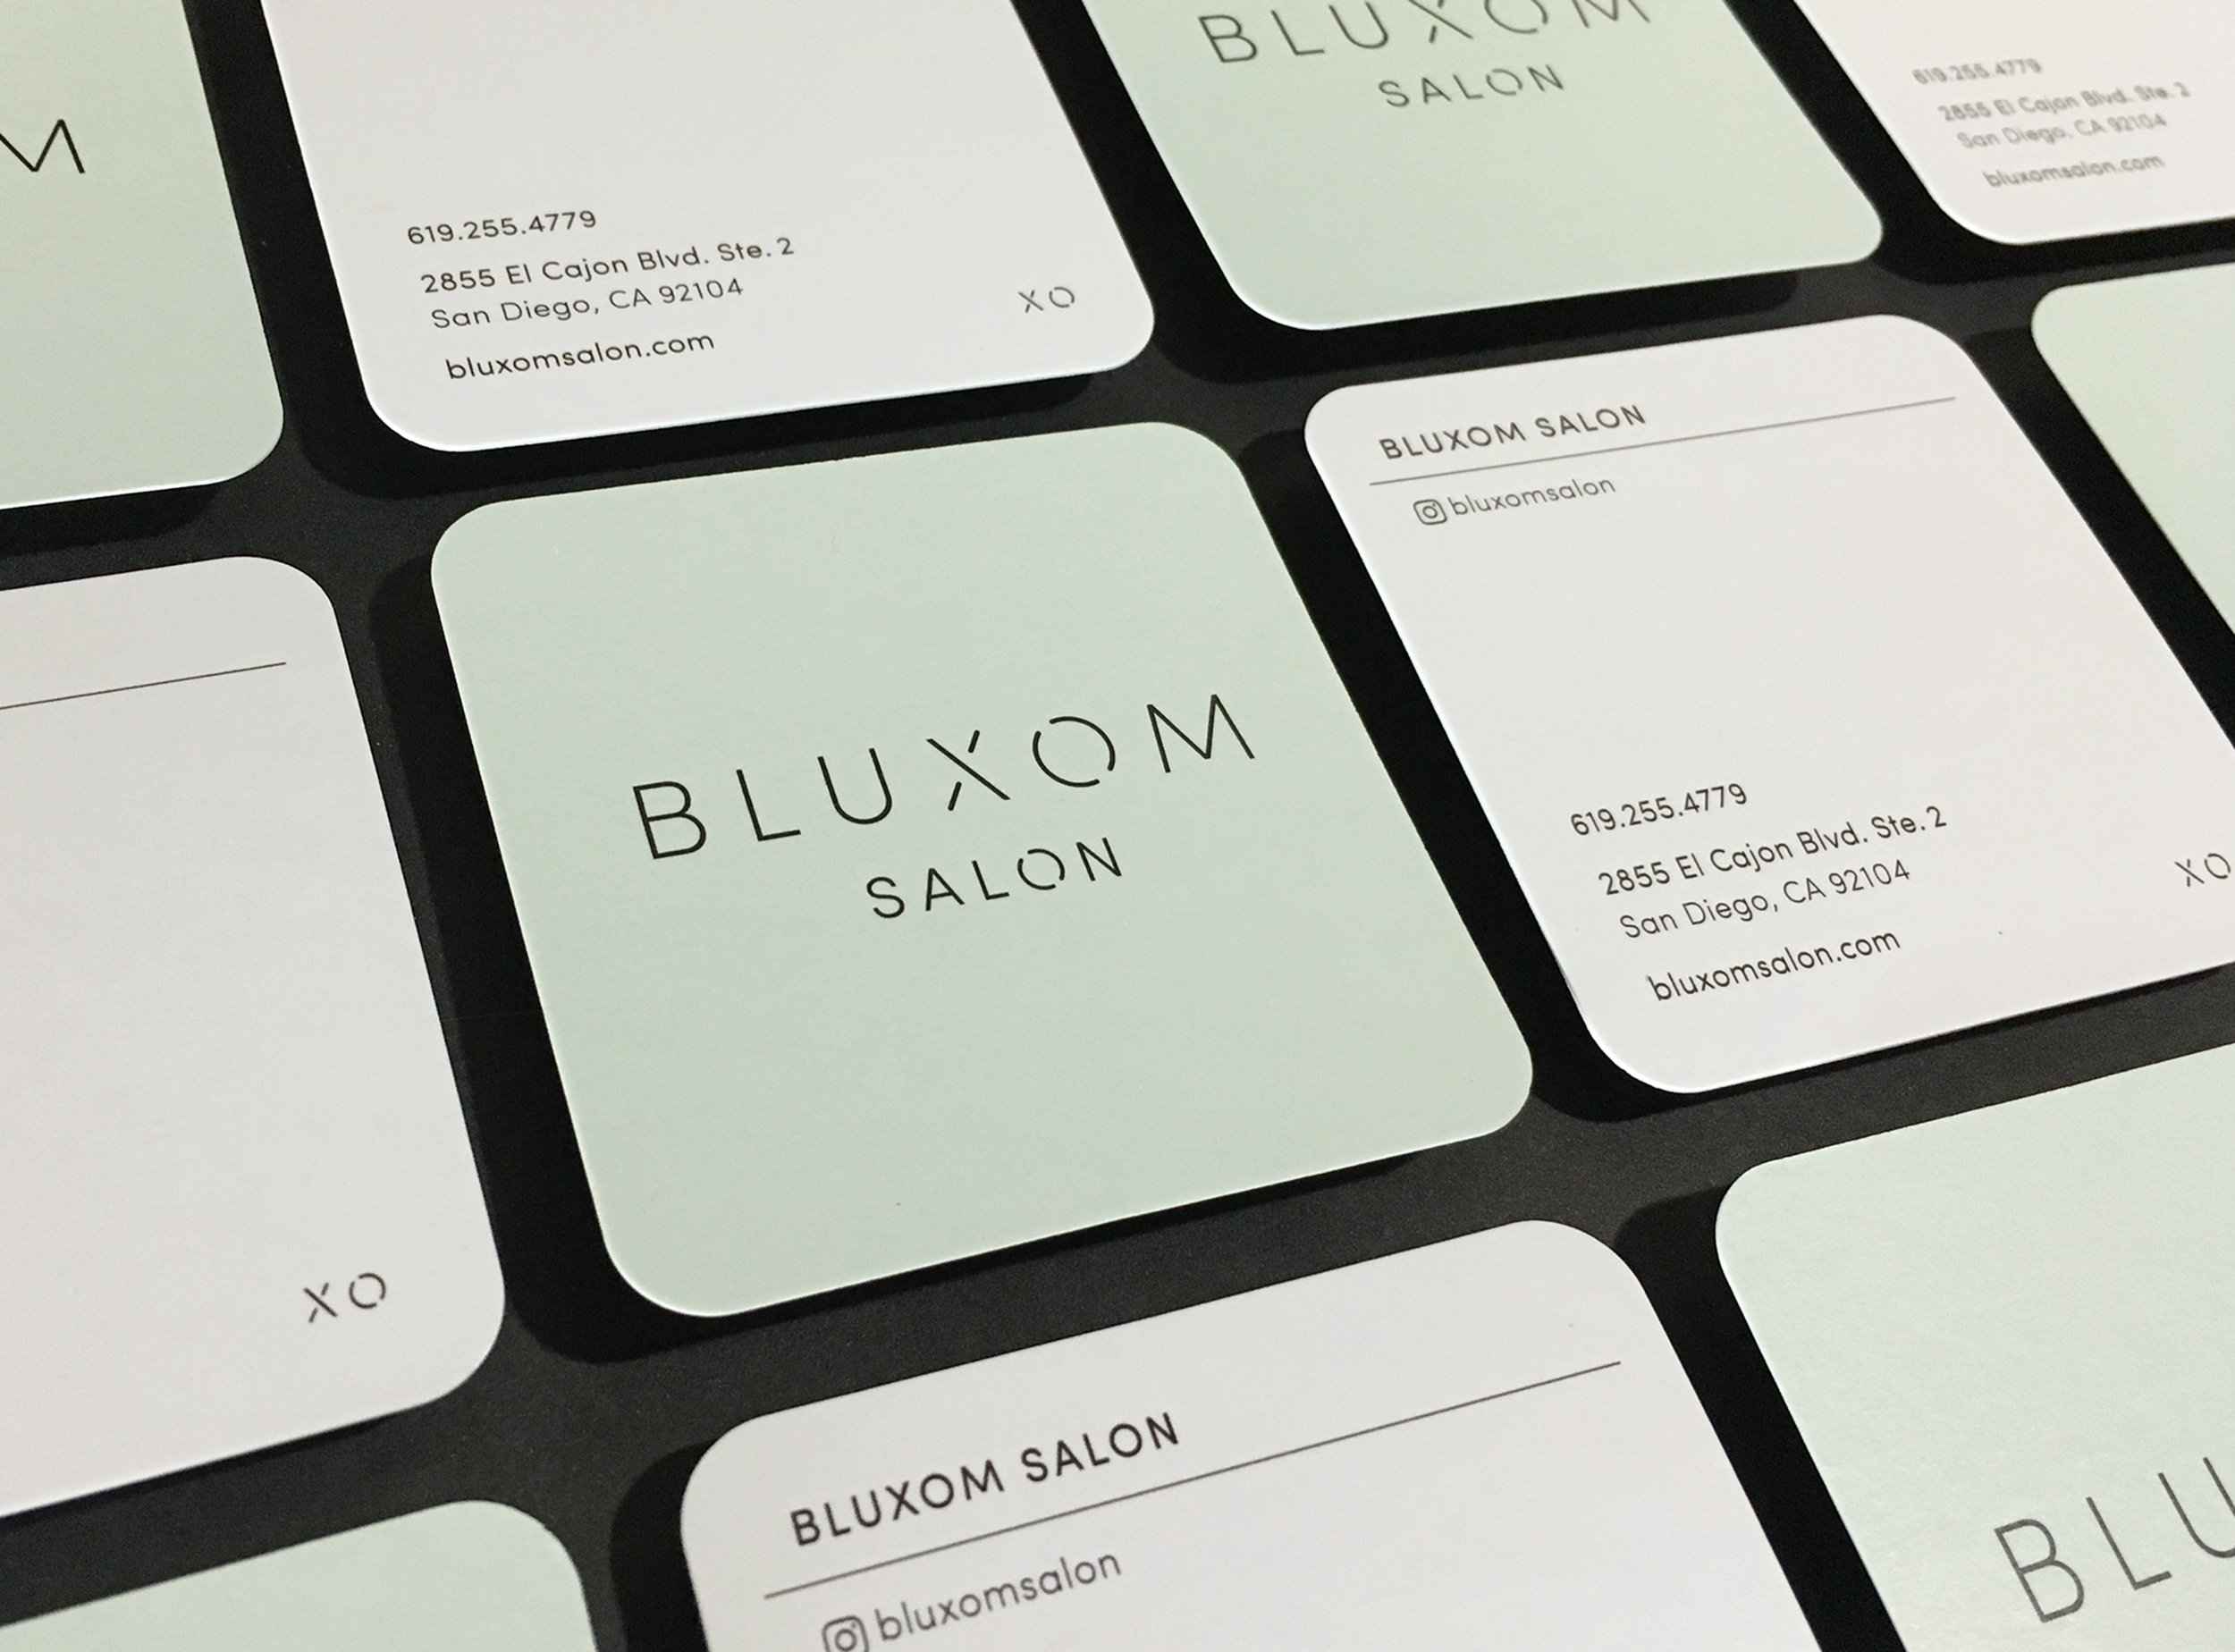 Business Card Template : Stylist name and Instagram handle to for to replace Bluxom Salon type for individual cards.